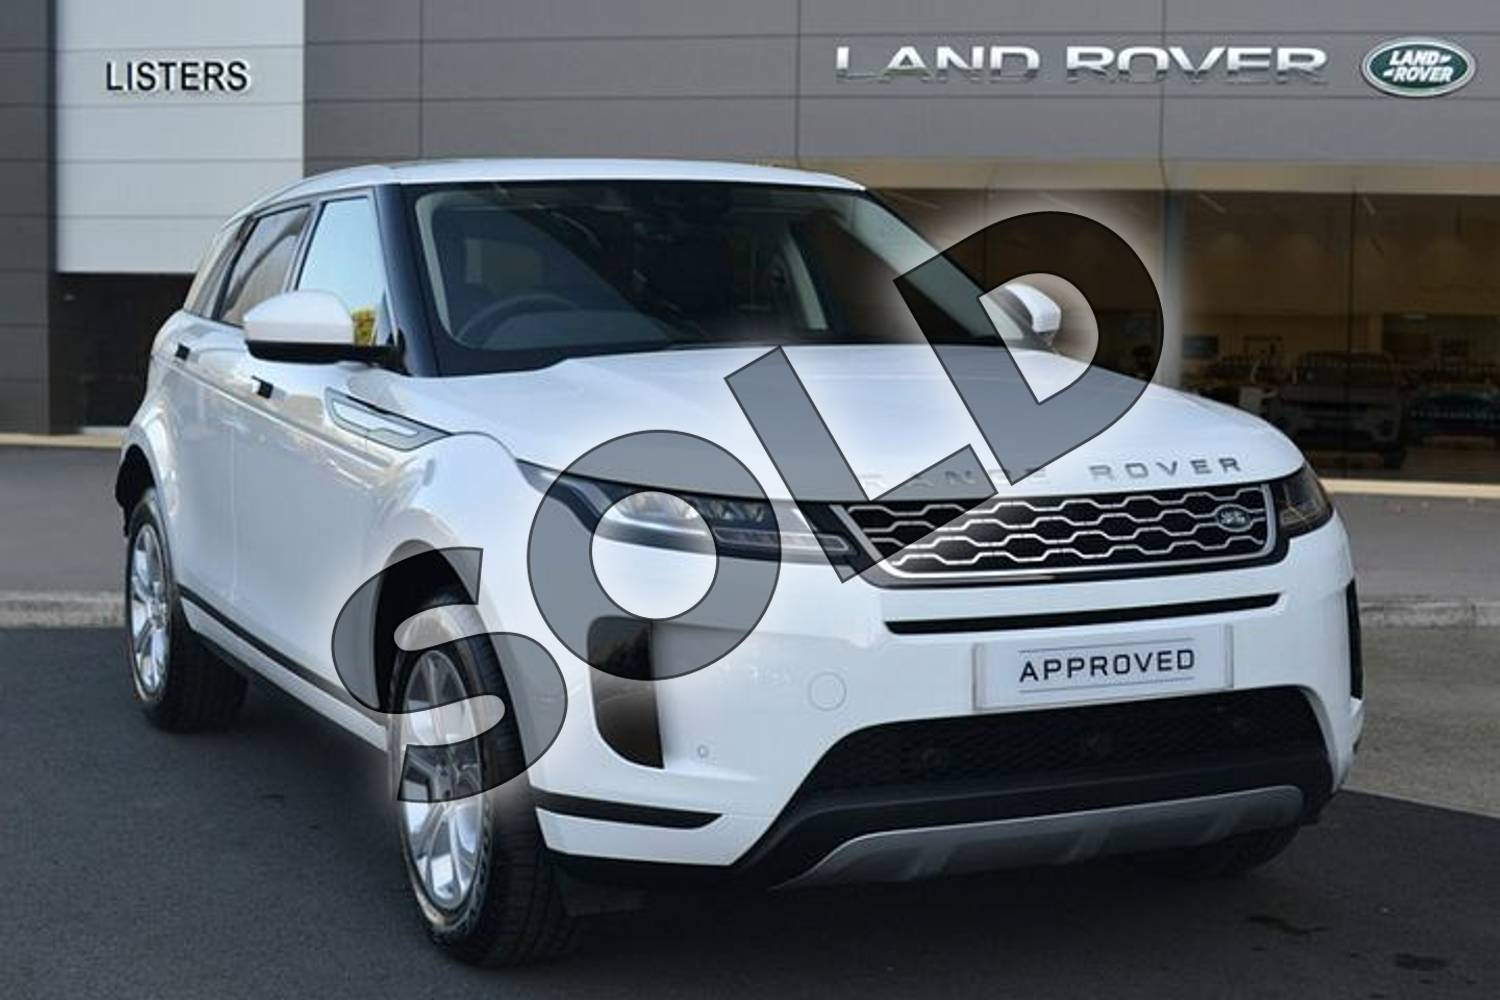 2019 Range Rover Evoque Diesel Hatchback 2.0 D180 S 5dr Auto in Fuji White at Listers Land Rover Hereford